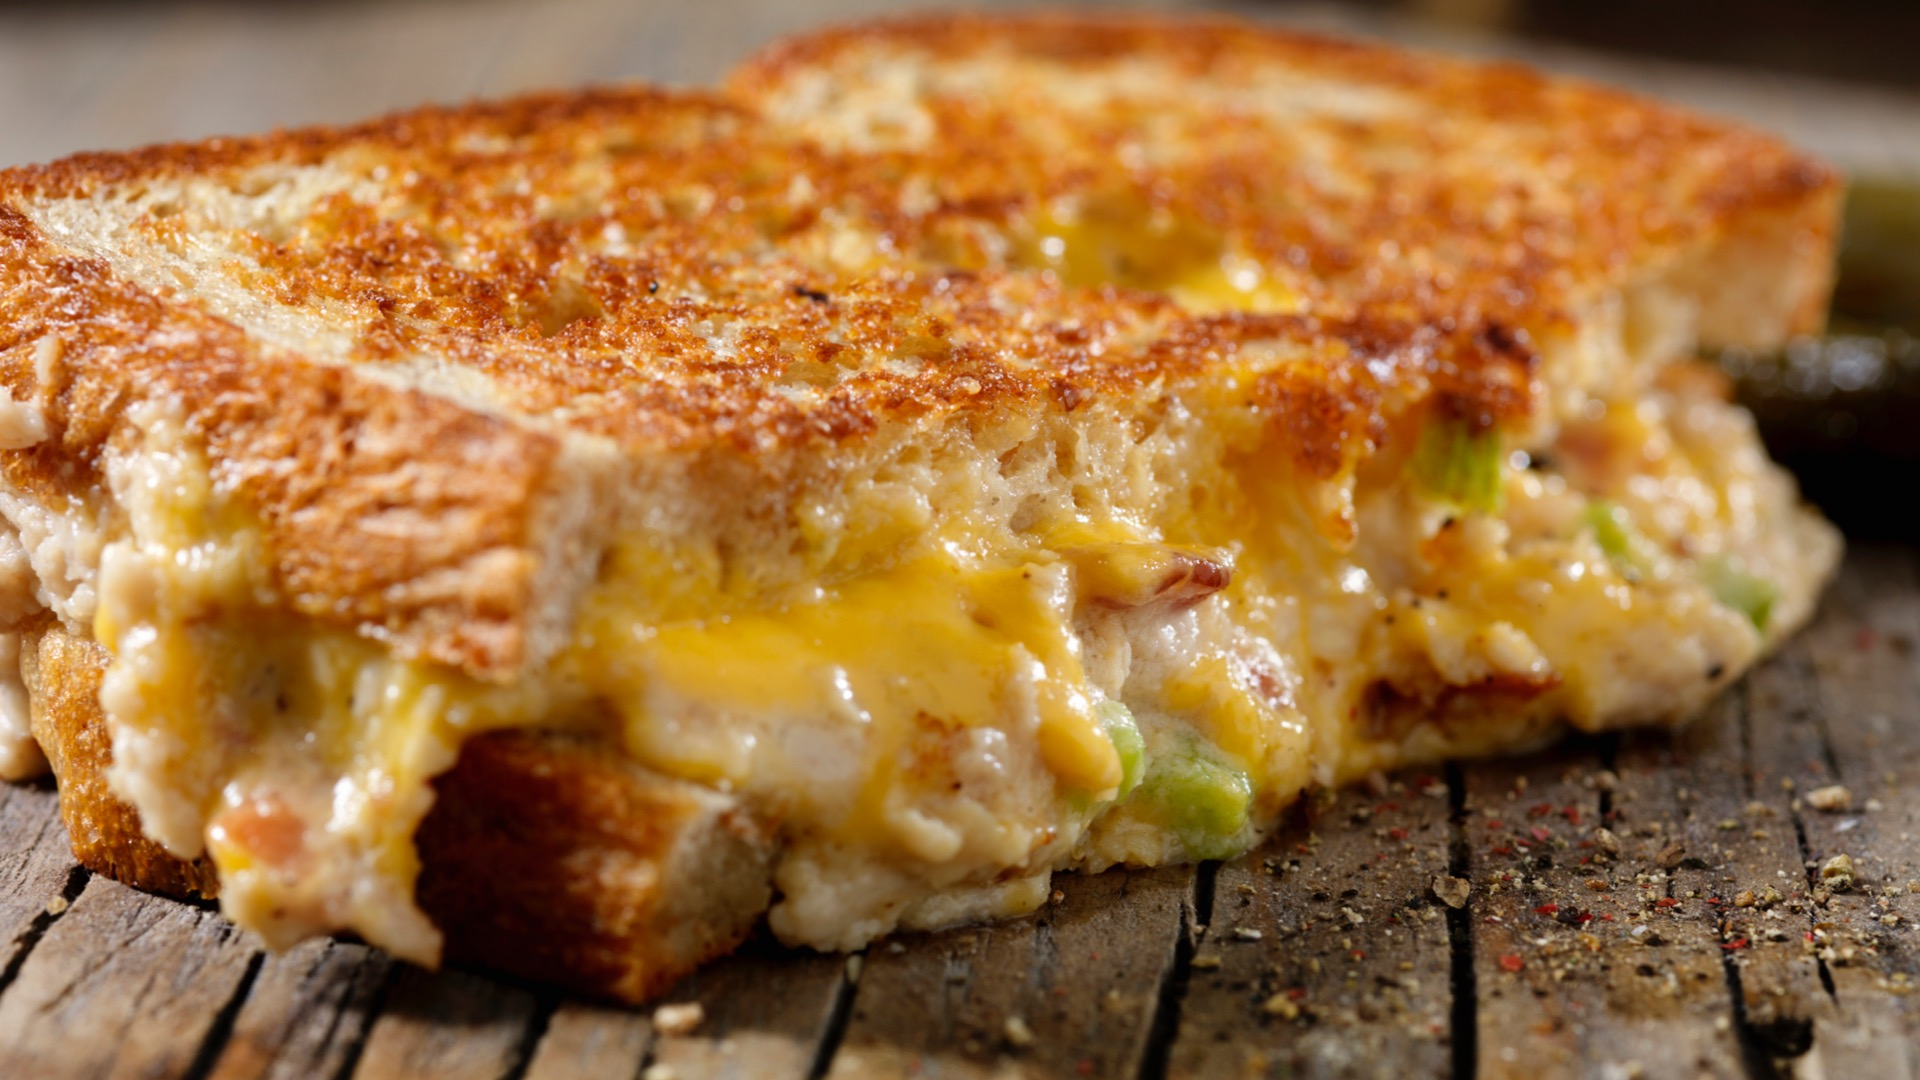 Half of a grilled cheese sandwich on table - best grilled cheese recipes in Batlimore